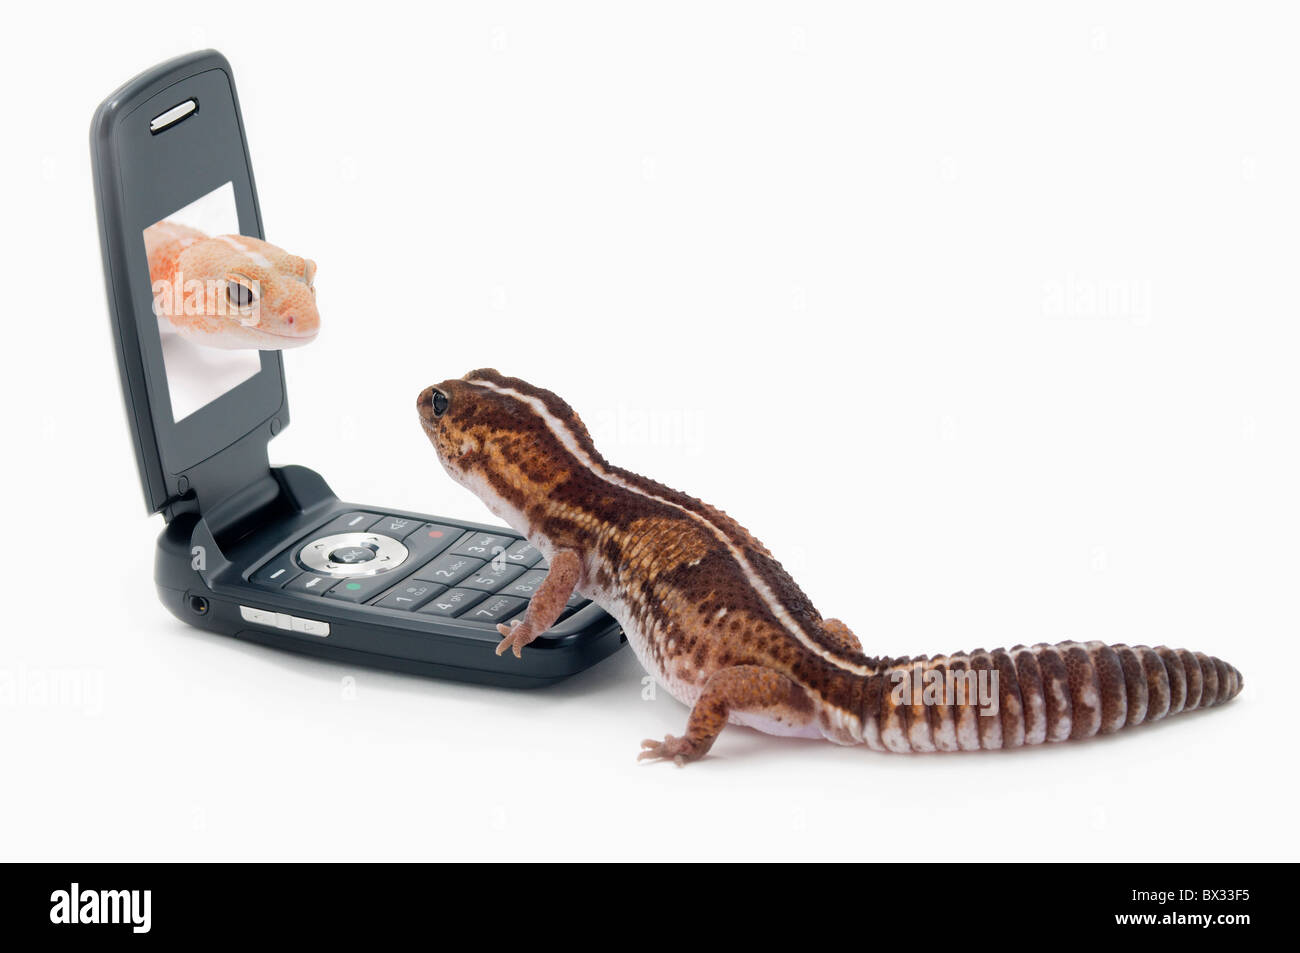 Image result for images of lizard and cell phone